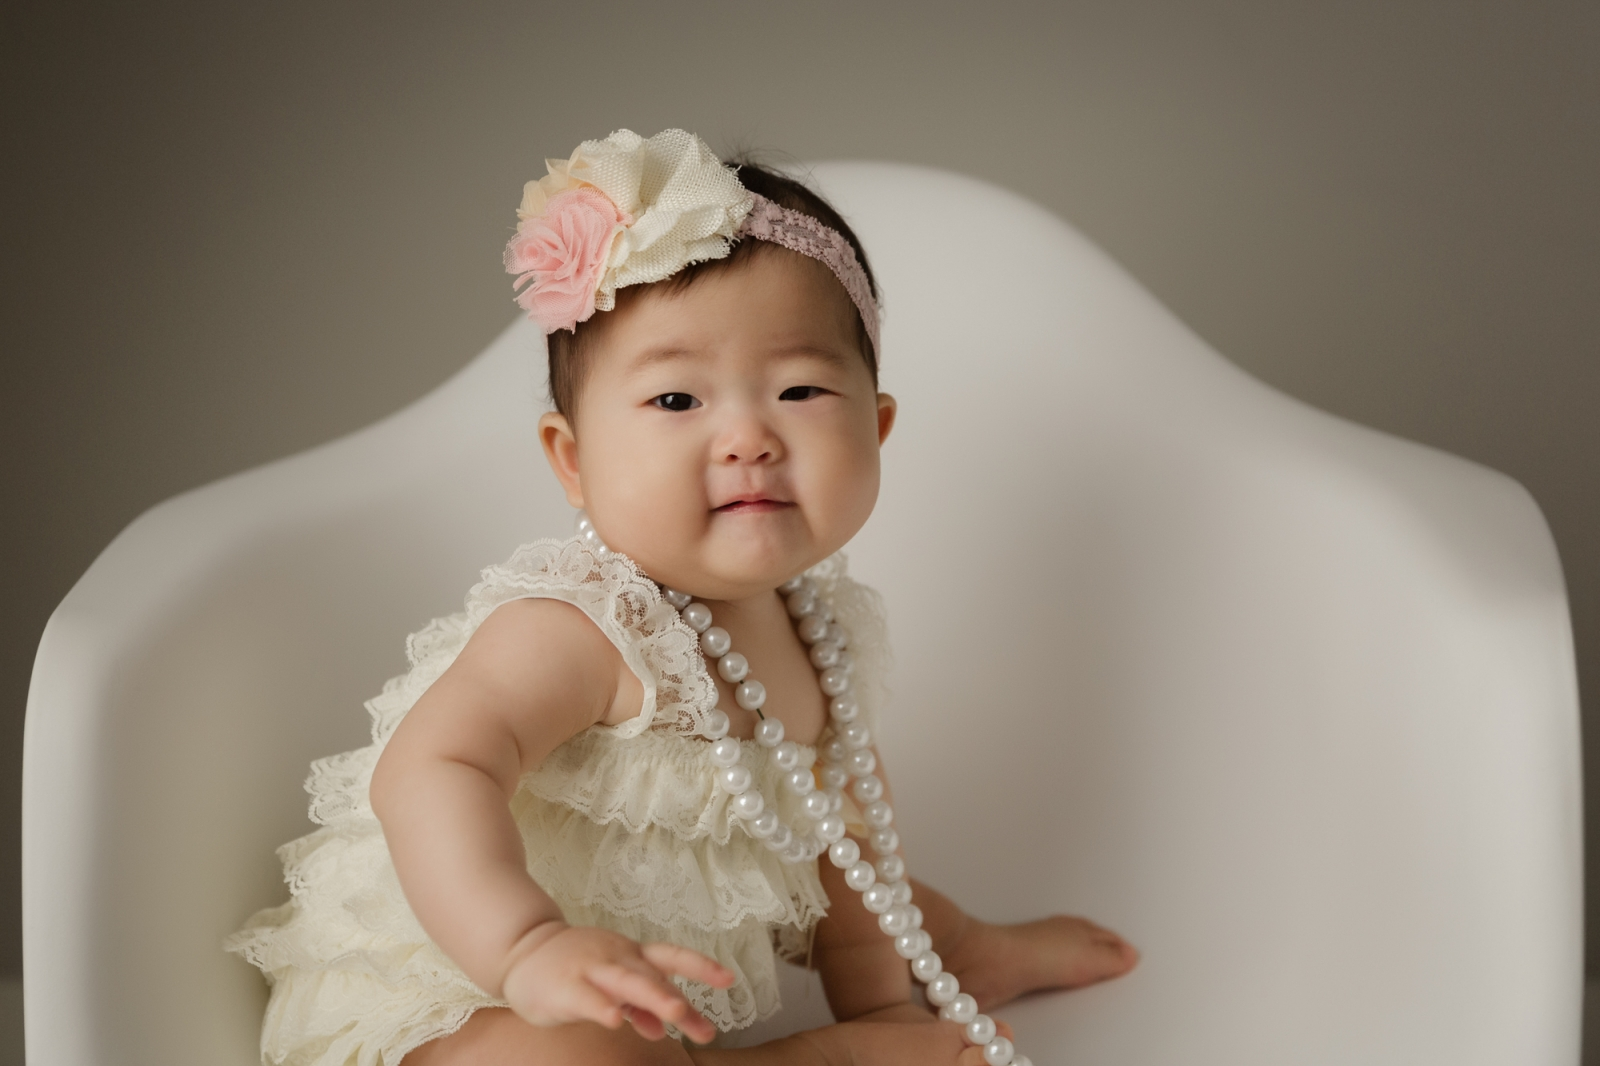 6 month old baby girl sitting in white chair in the studio